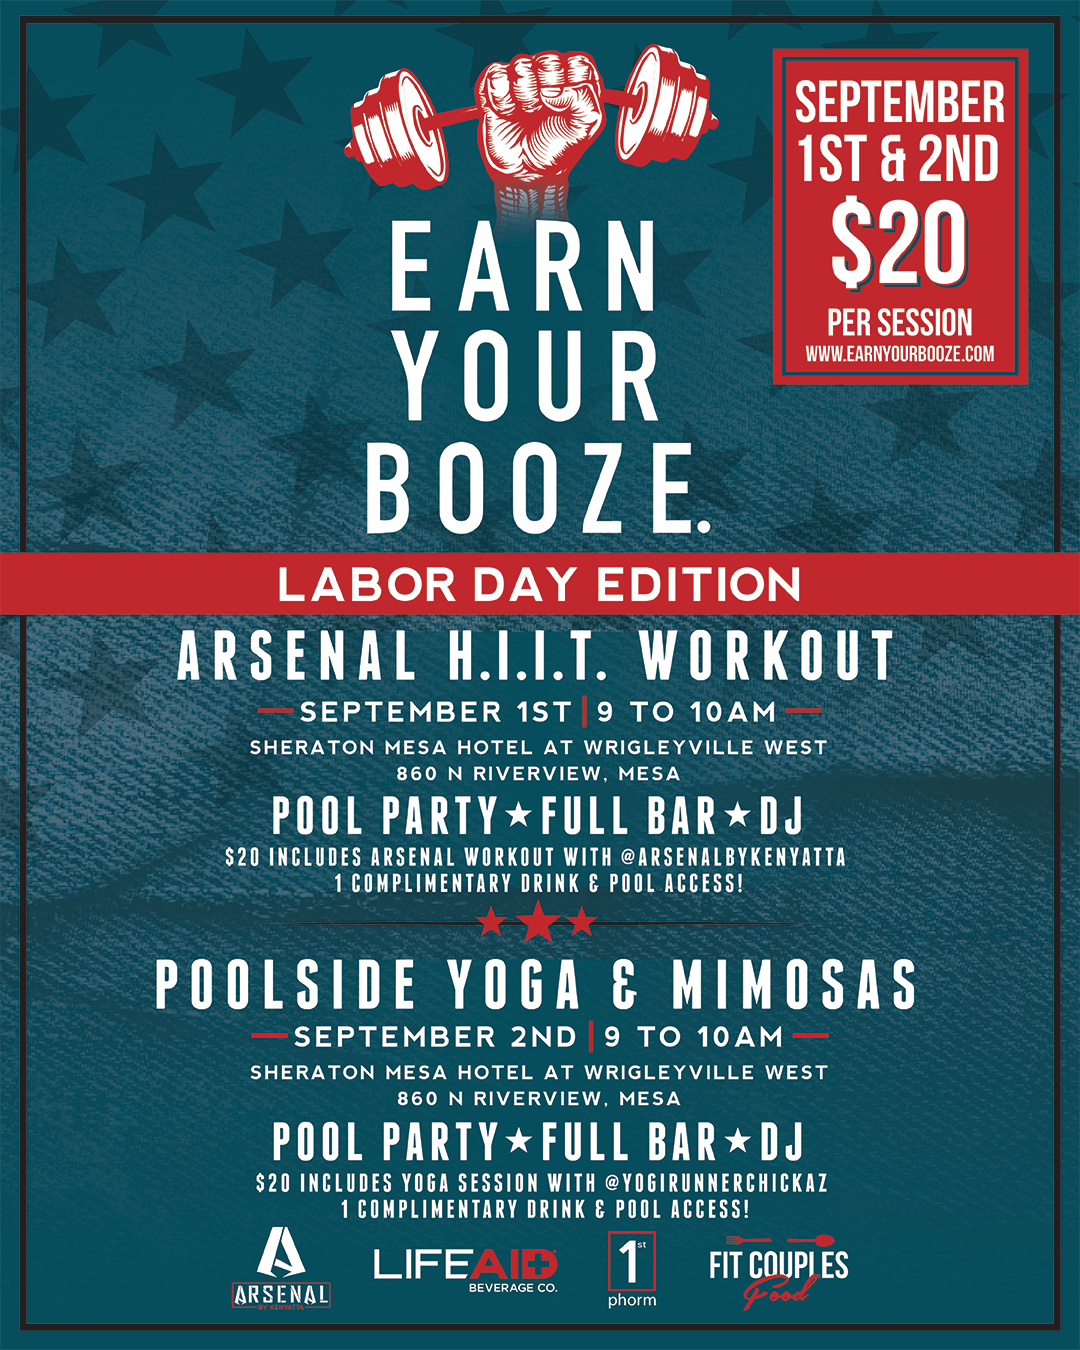 Labor Day weekend EYB events! Choose SAT -or- SUNEarn Your Booze